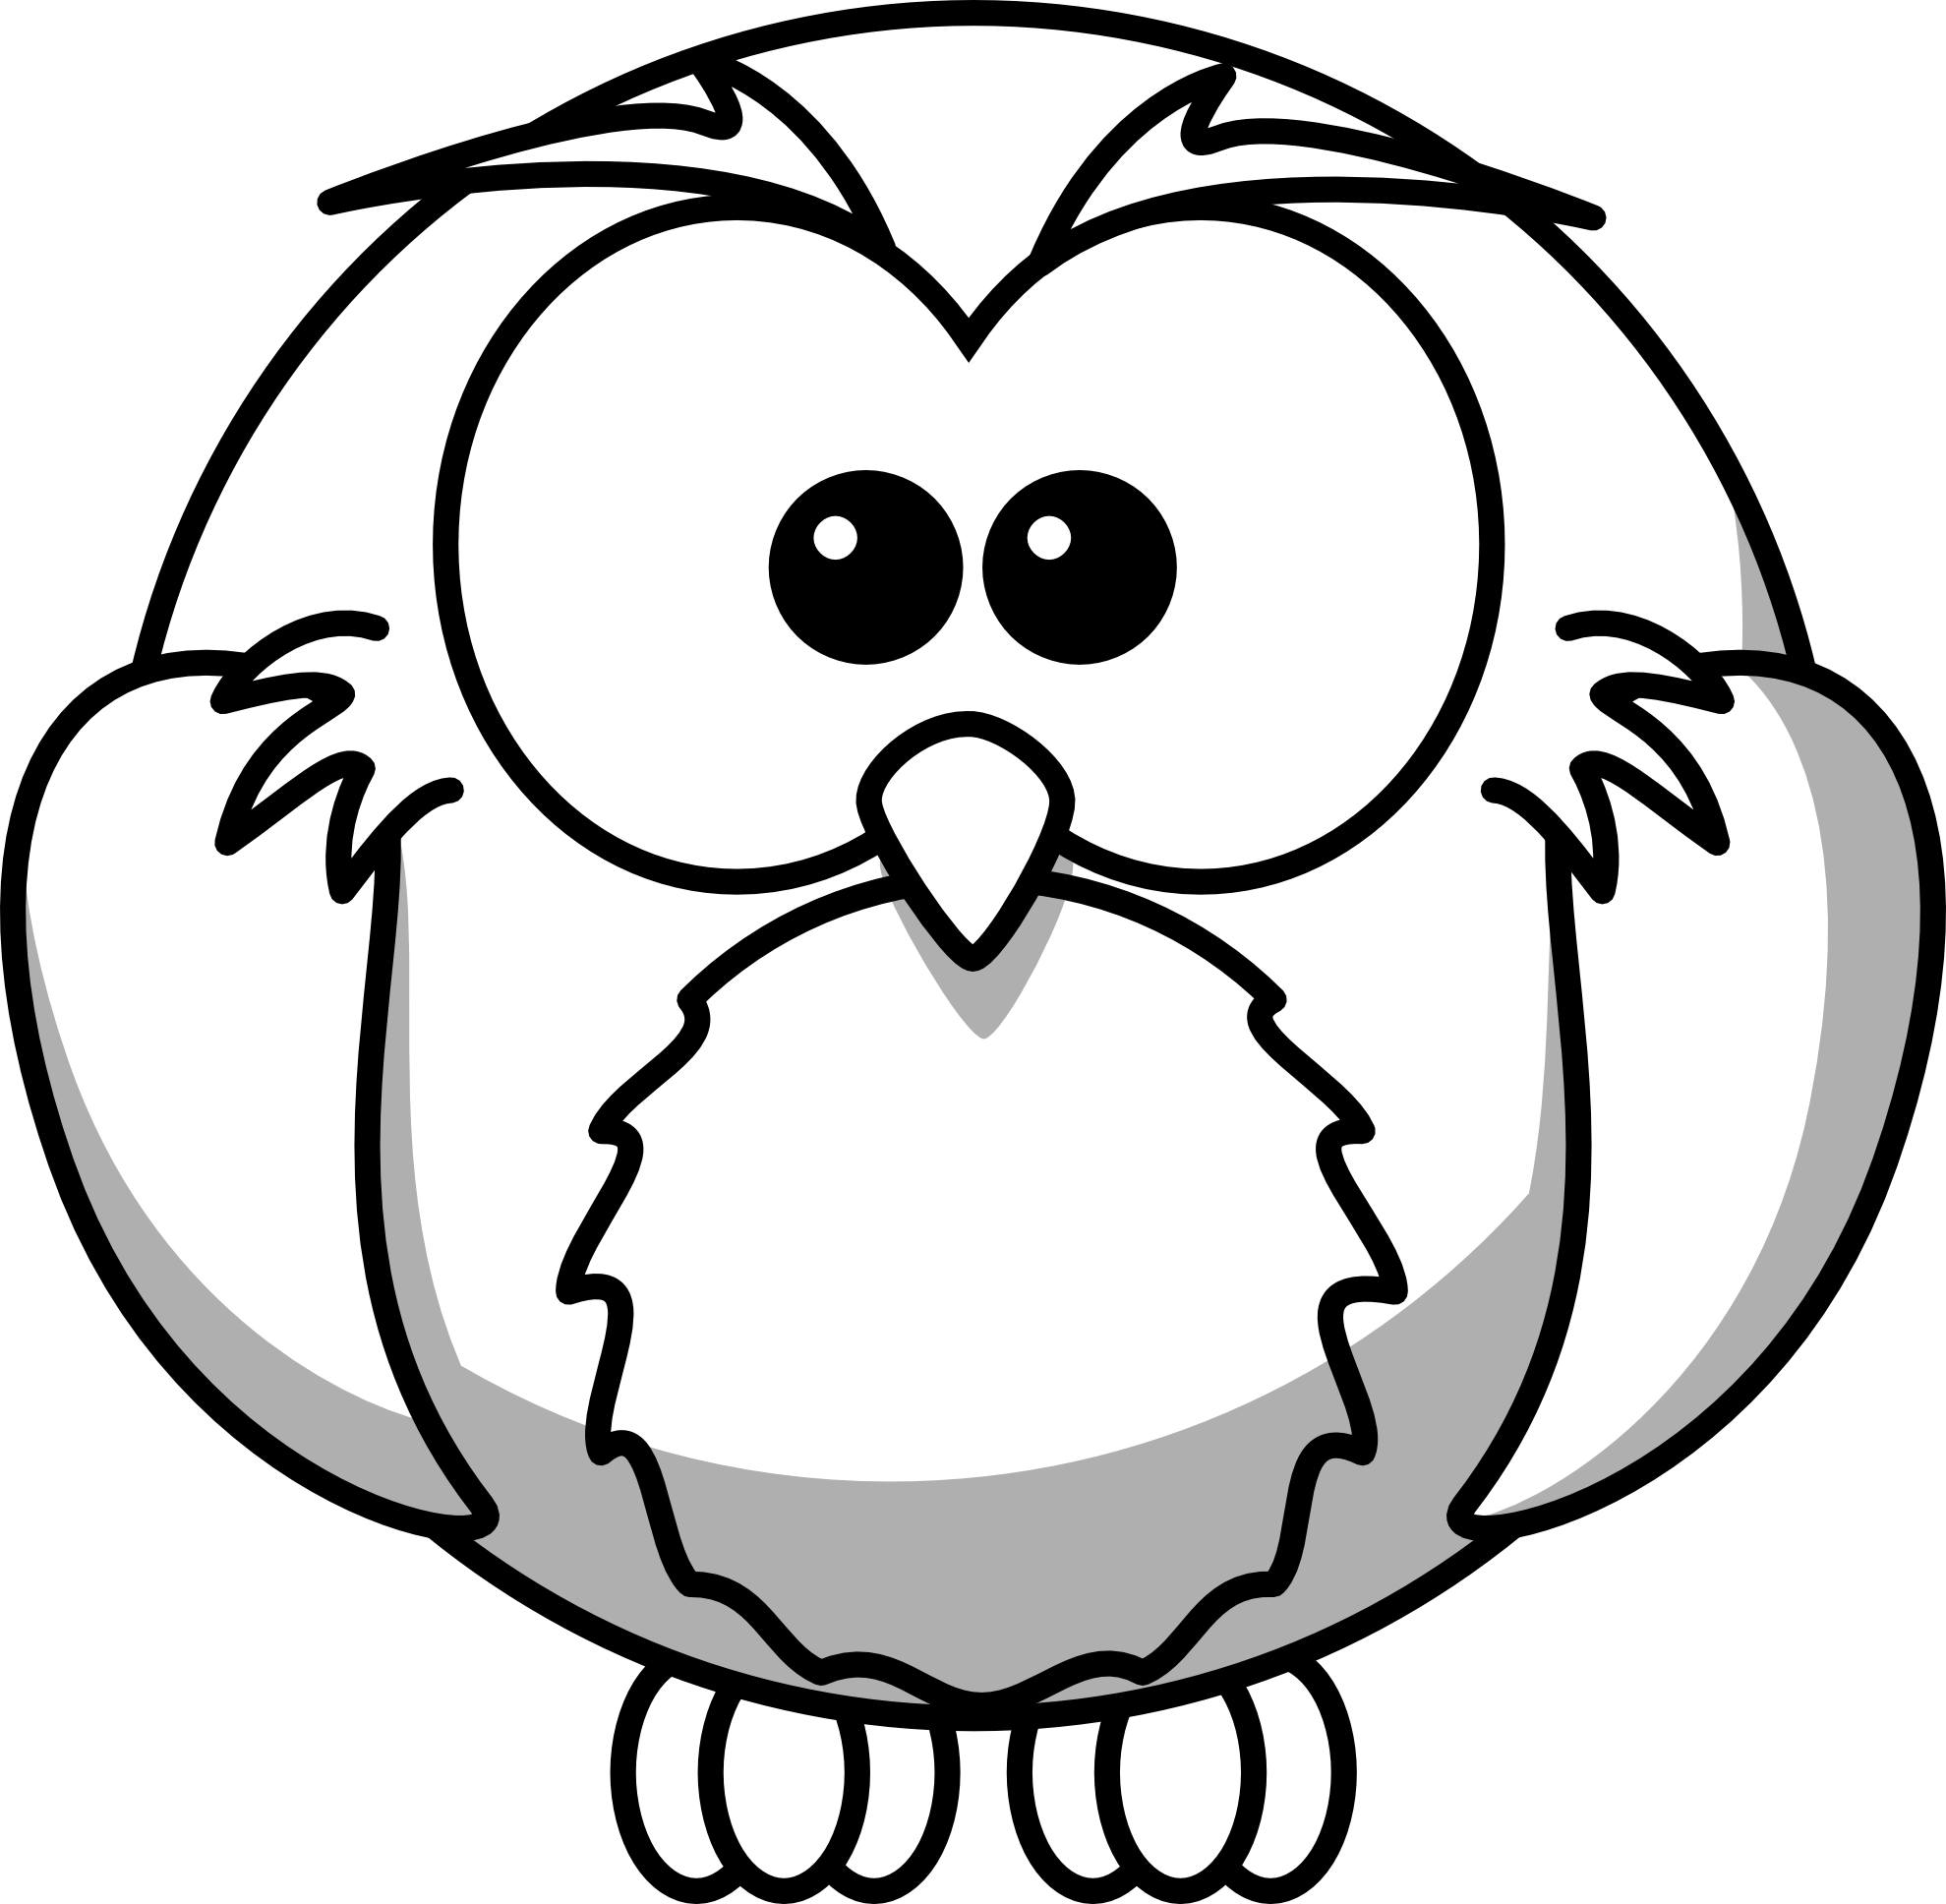 Owl black and white. Owls clipart head